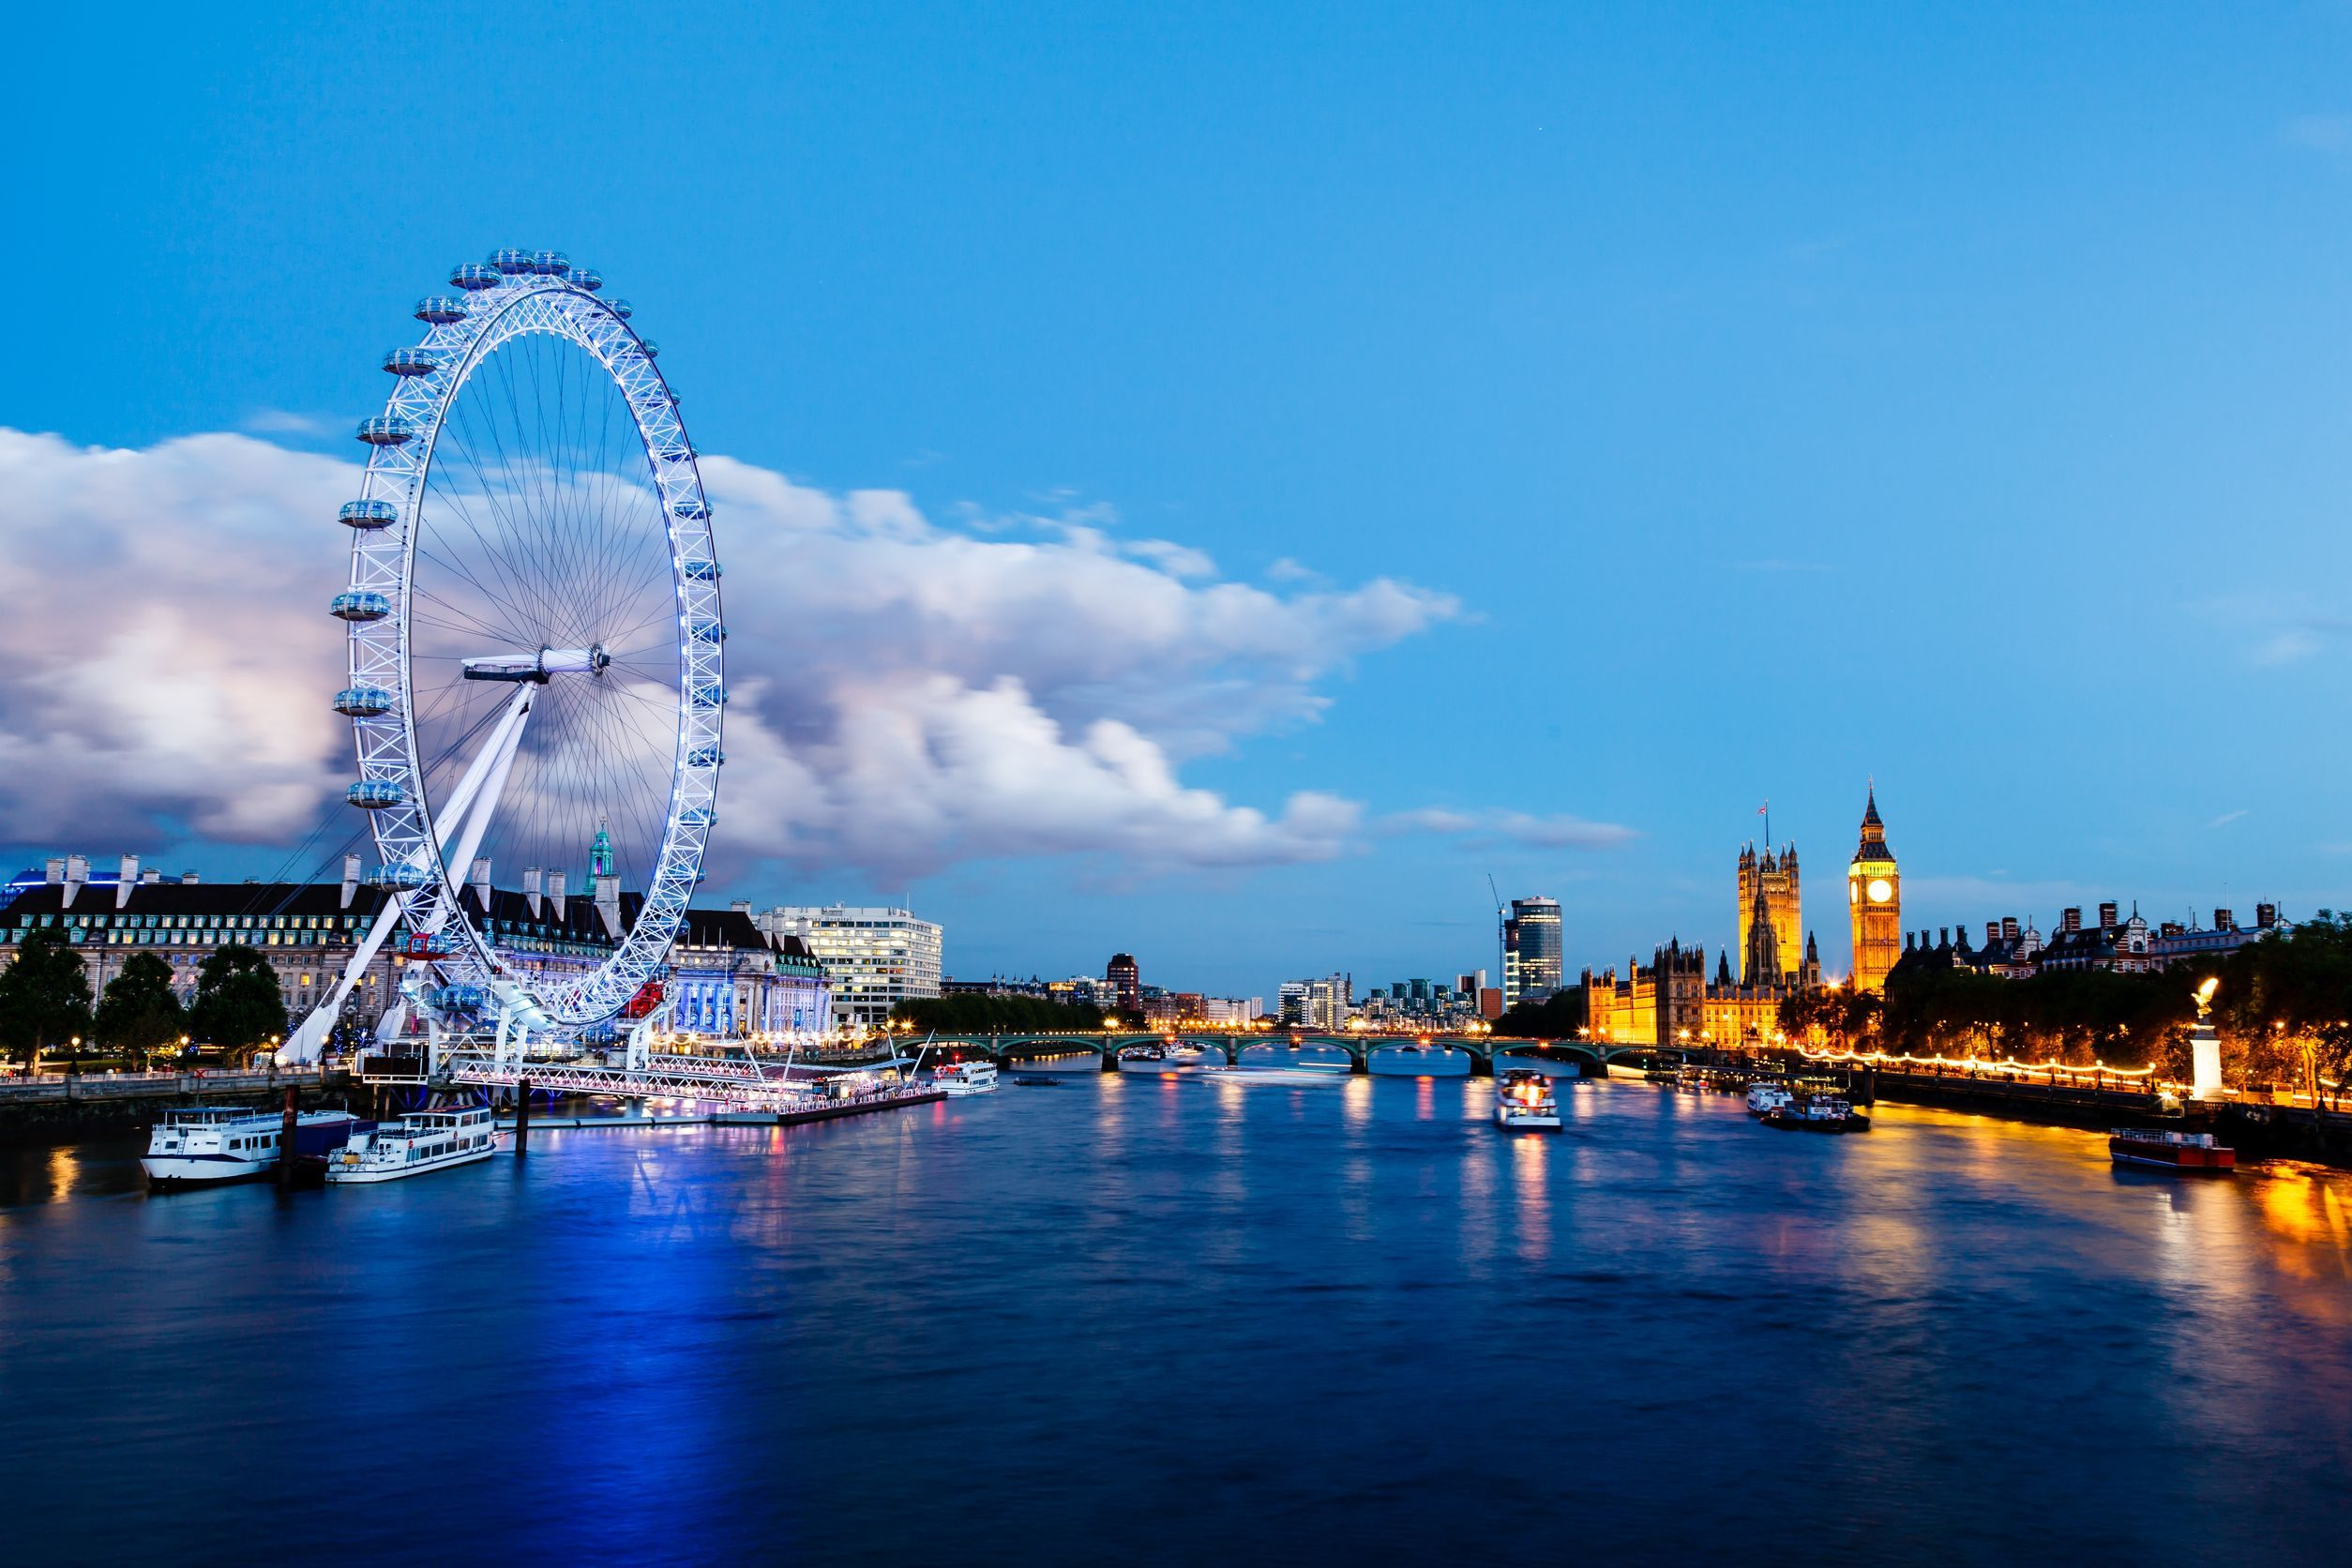 Pic_London_Eye.jpg